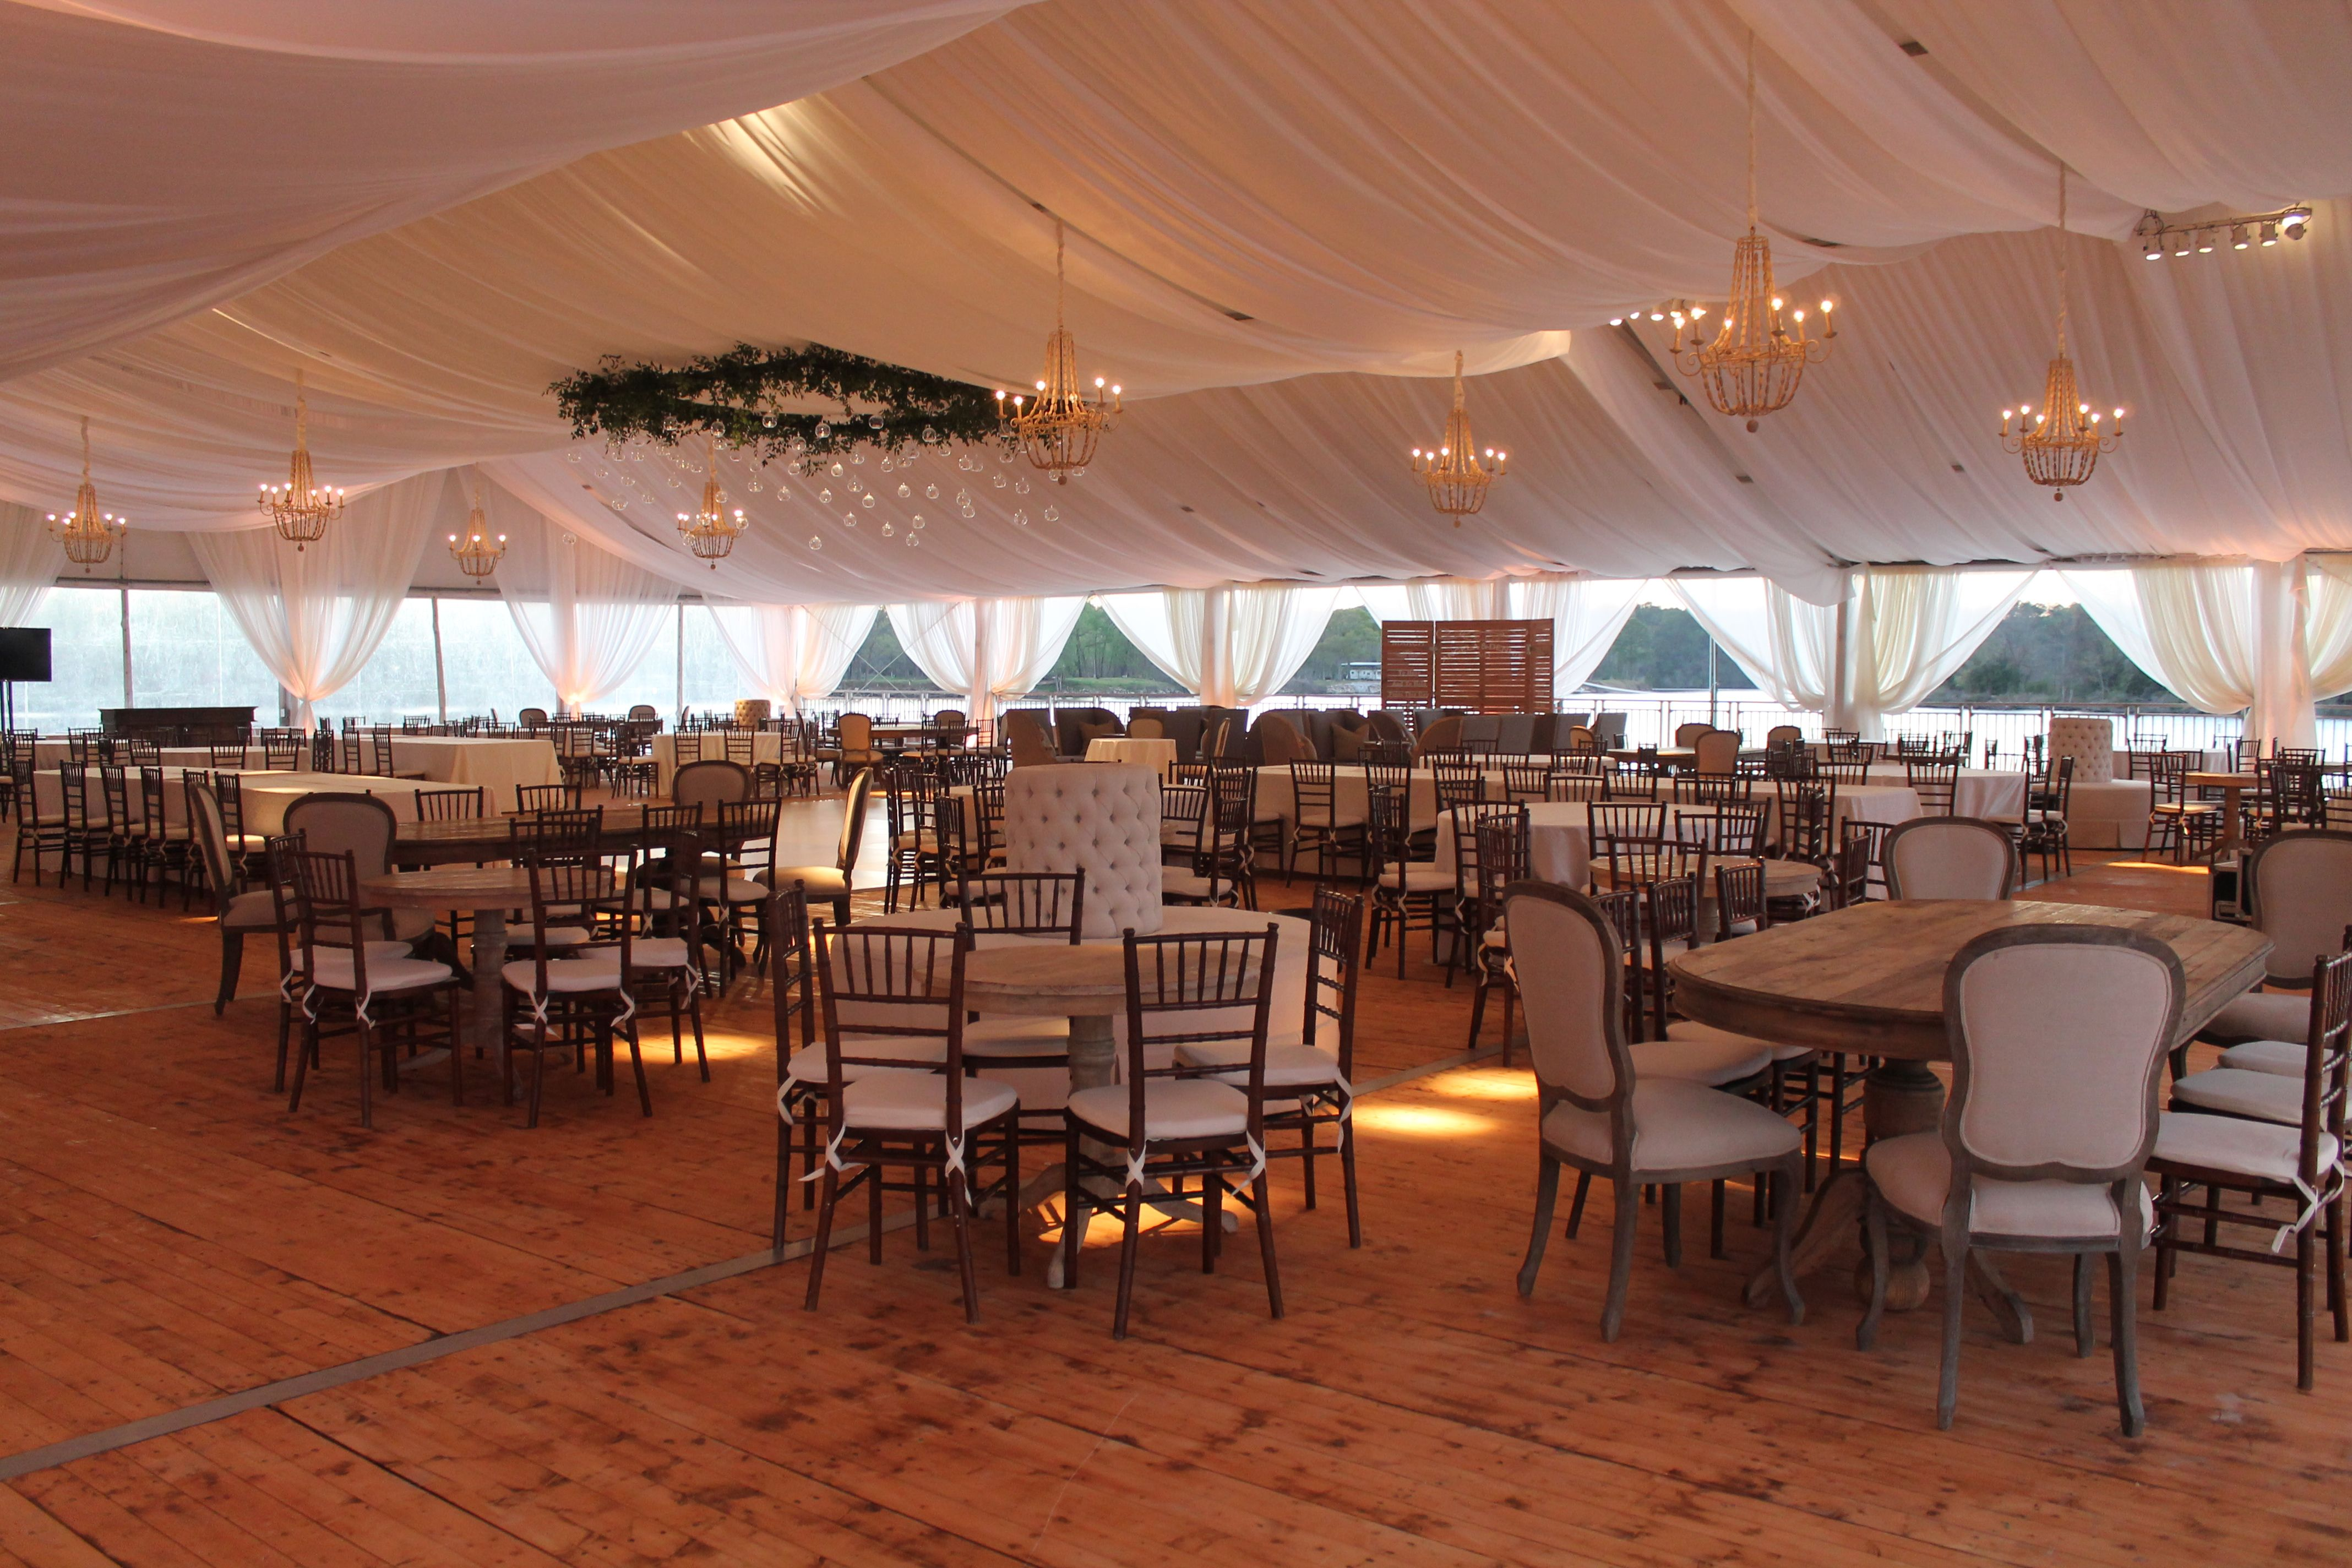 Tran Wedding // AZTEC Events and Tents  Wedding Ideas  Pinterest